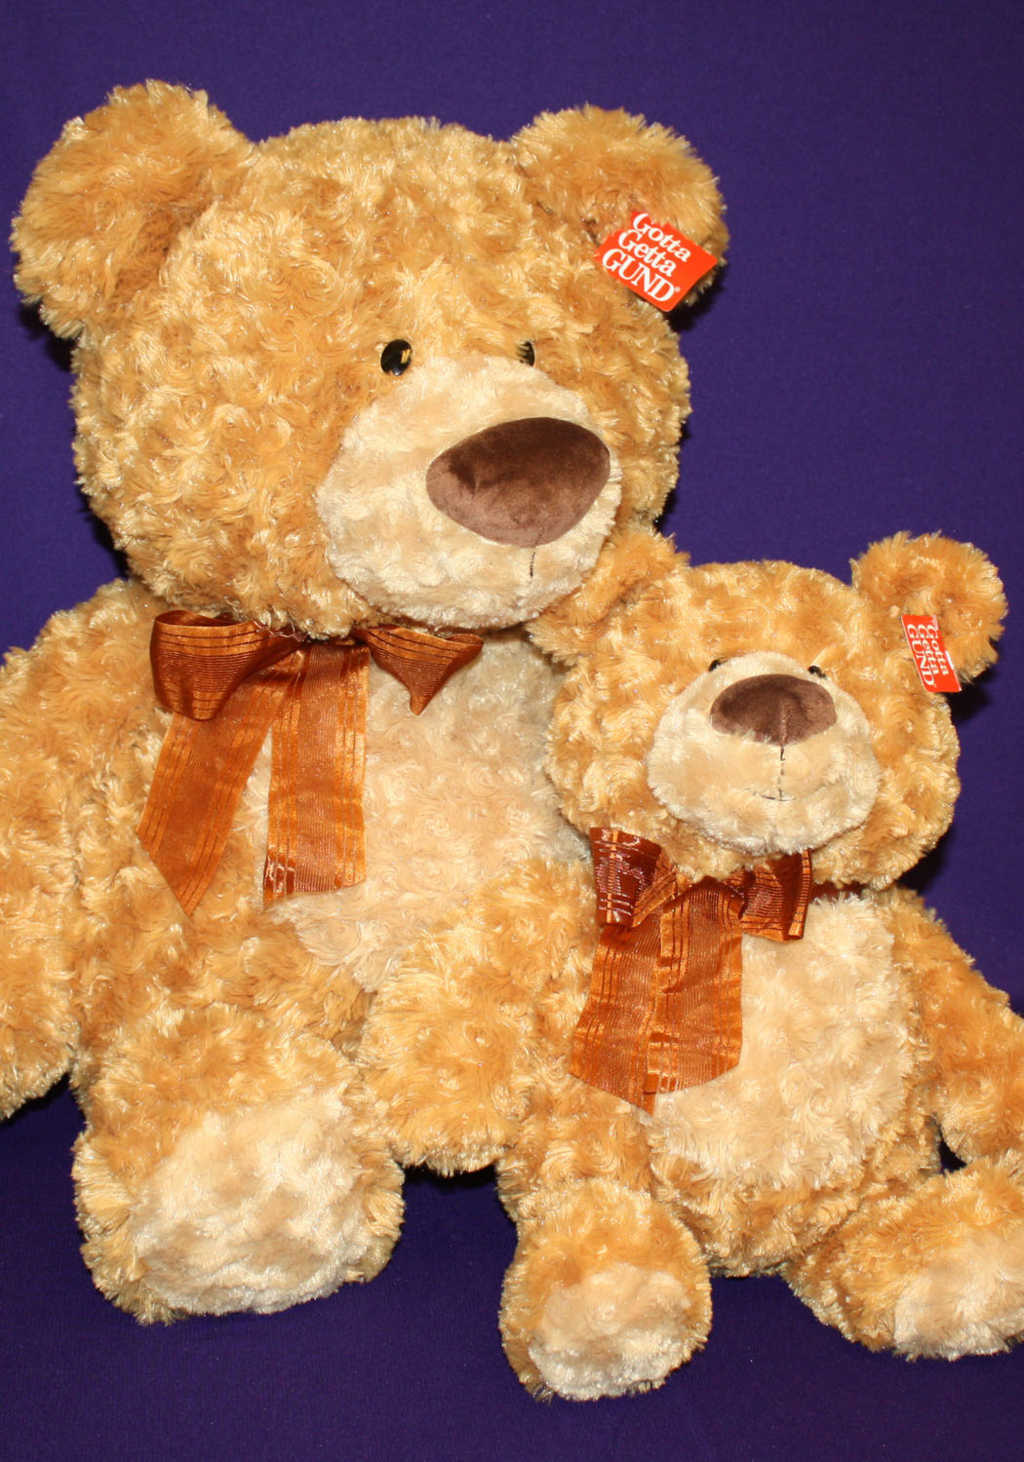 Big Brown Fluffy Bear with Small Brown Bear Plush Toy Available at Mon General Hospital Gift Shop